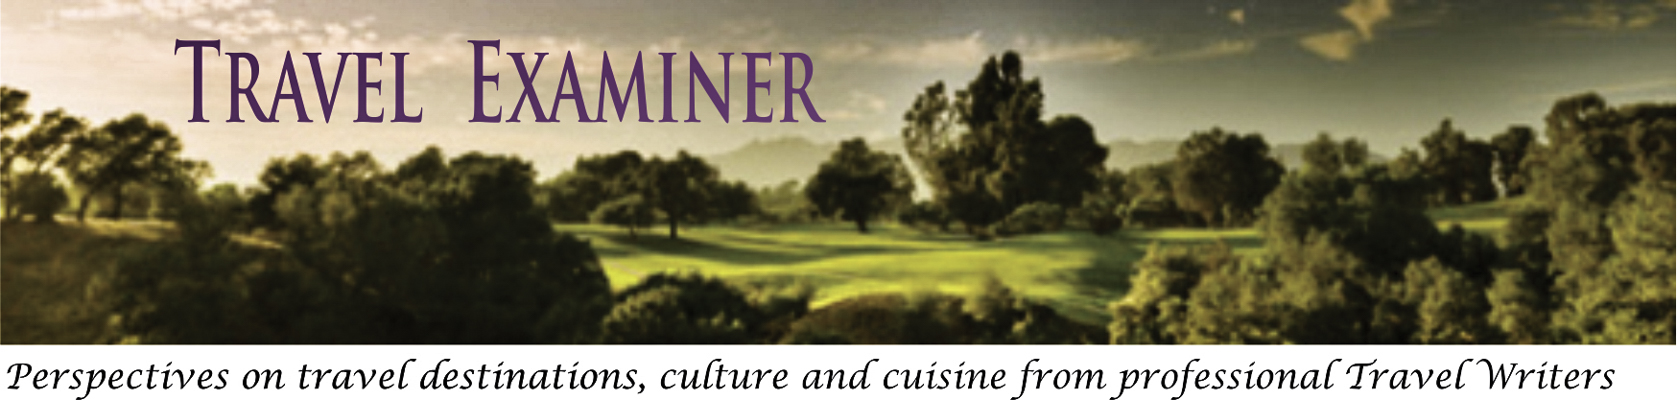 Travel Examiner